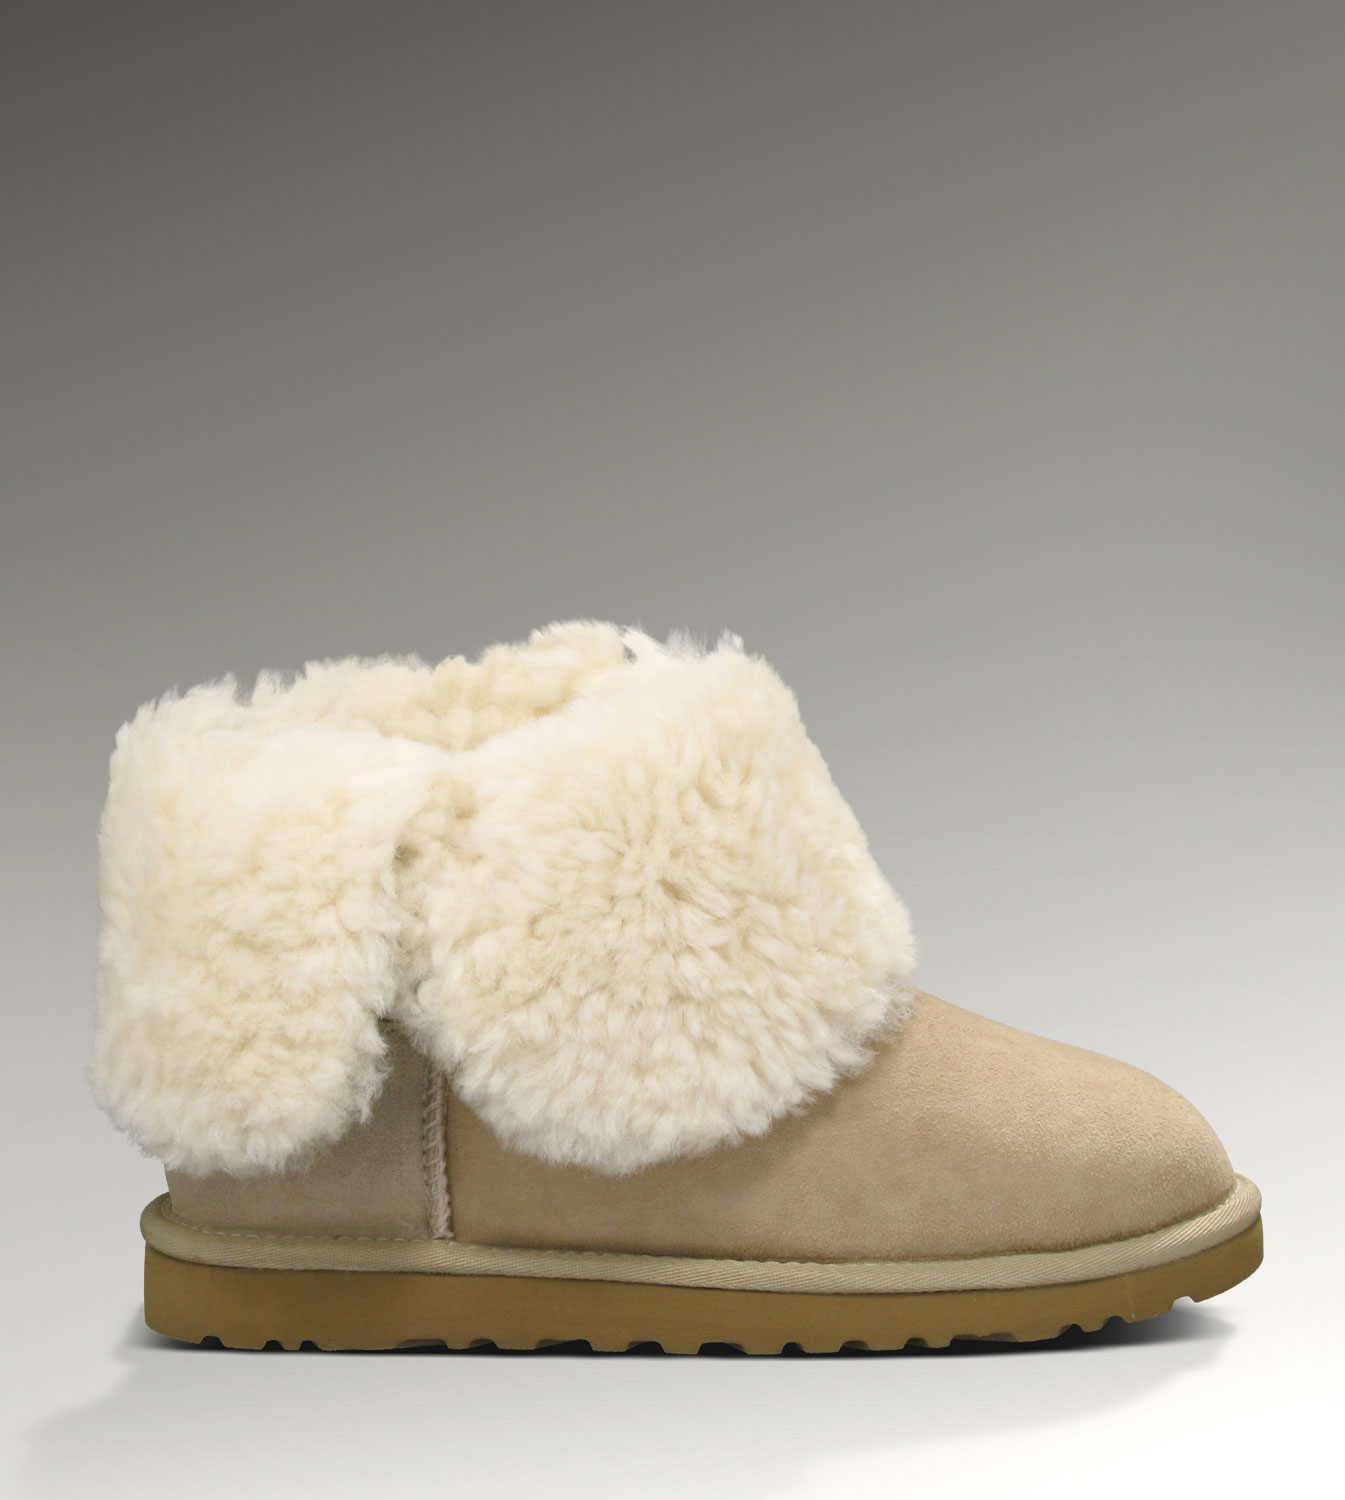 UGG Bailey Button 5803 Sand Boots